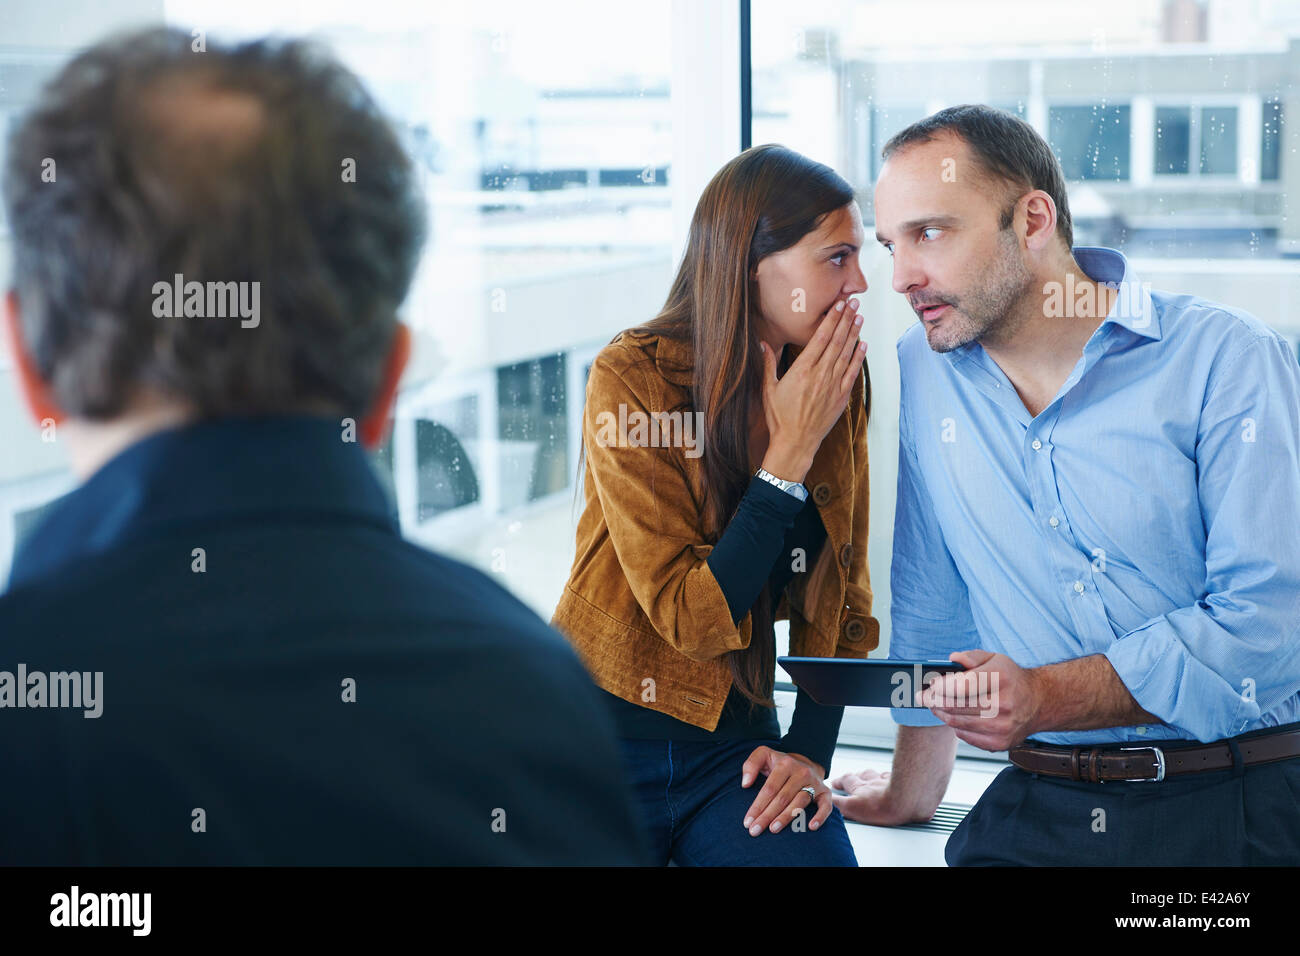 Businesswoman whispering to man in office - Stock Image